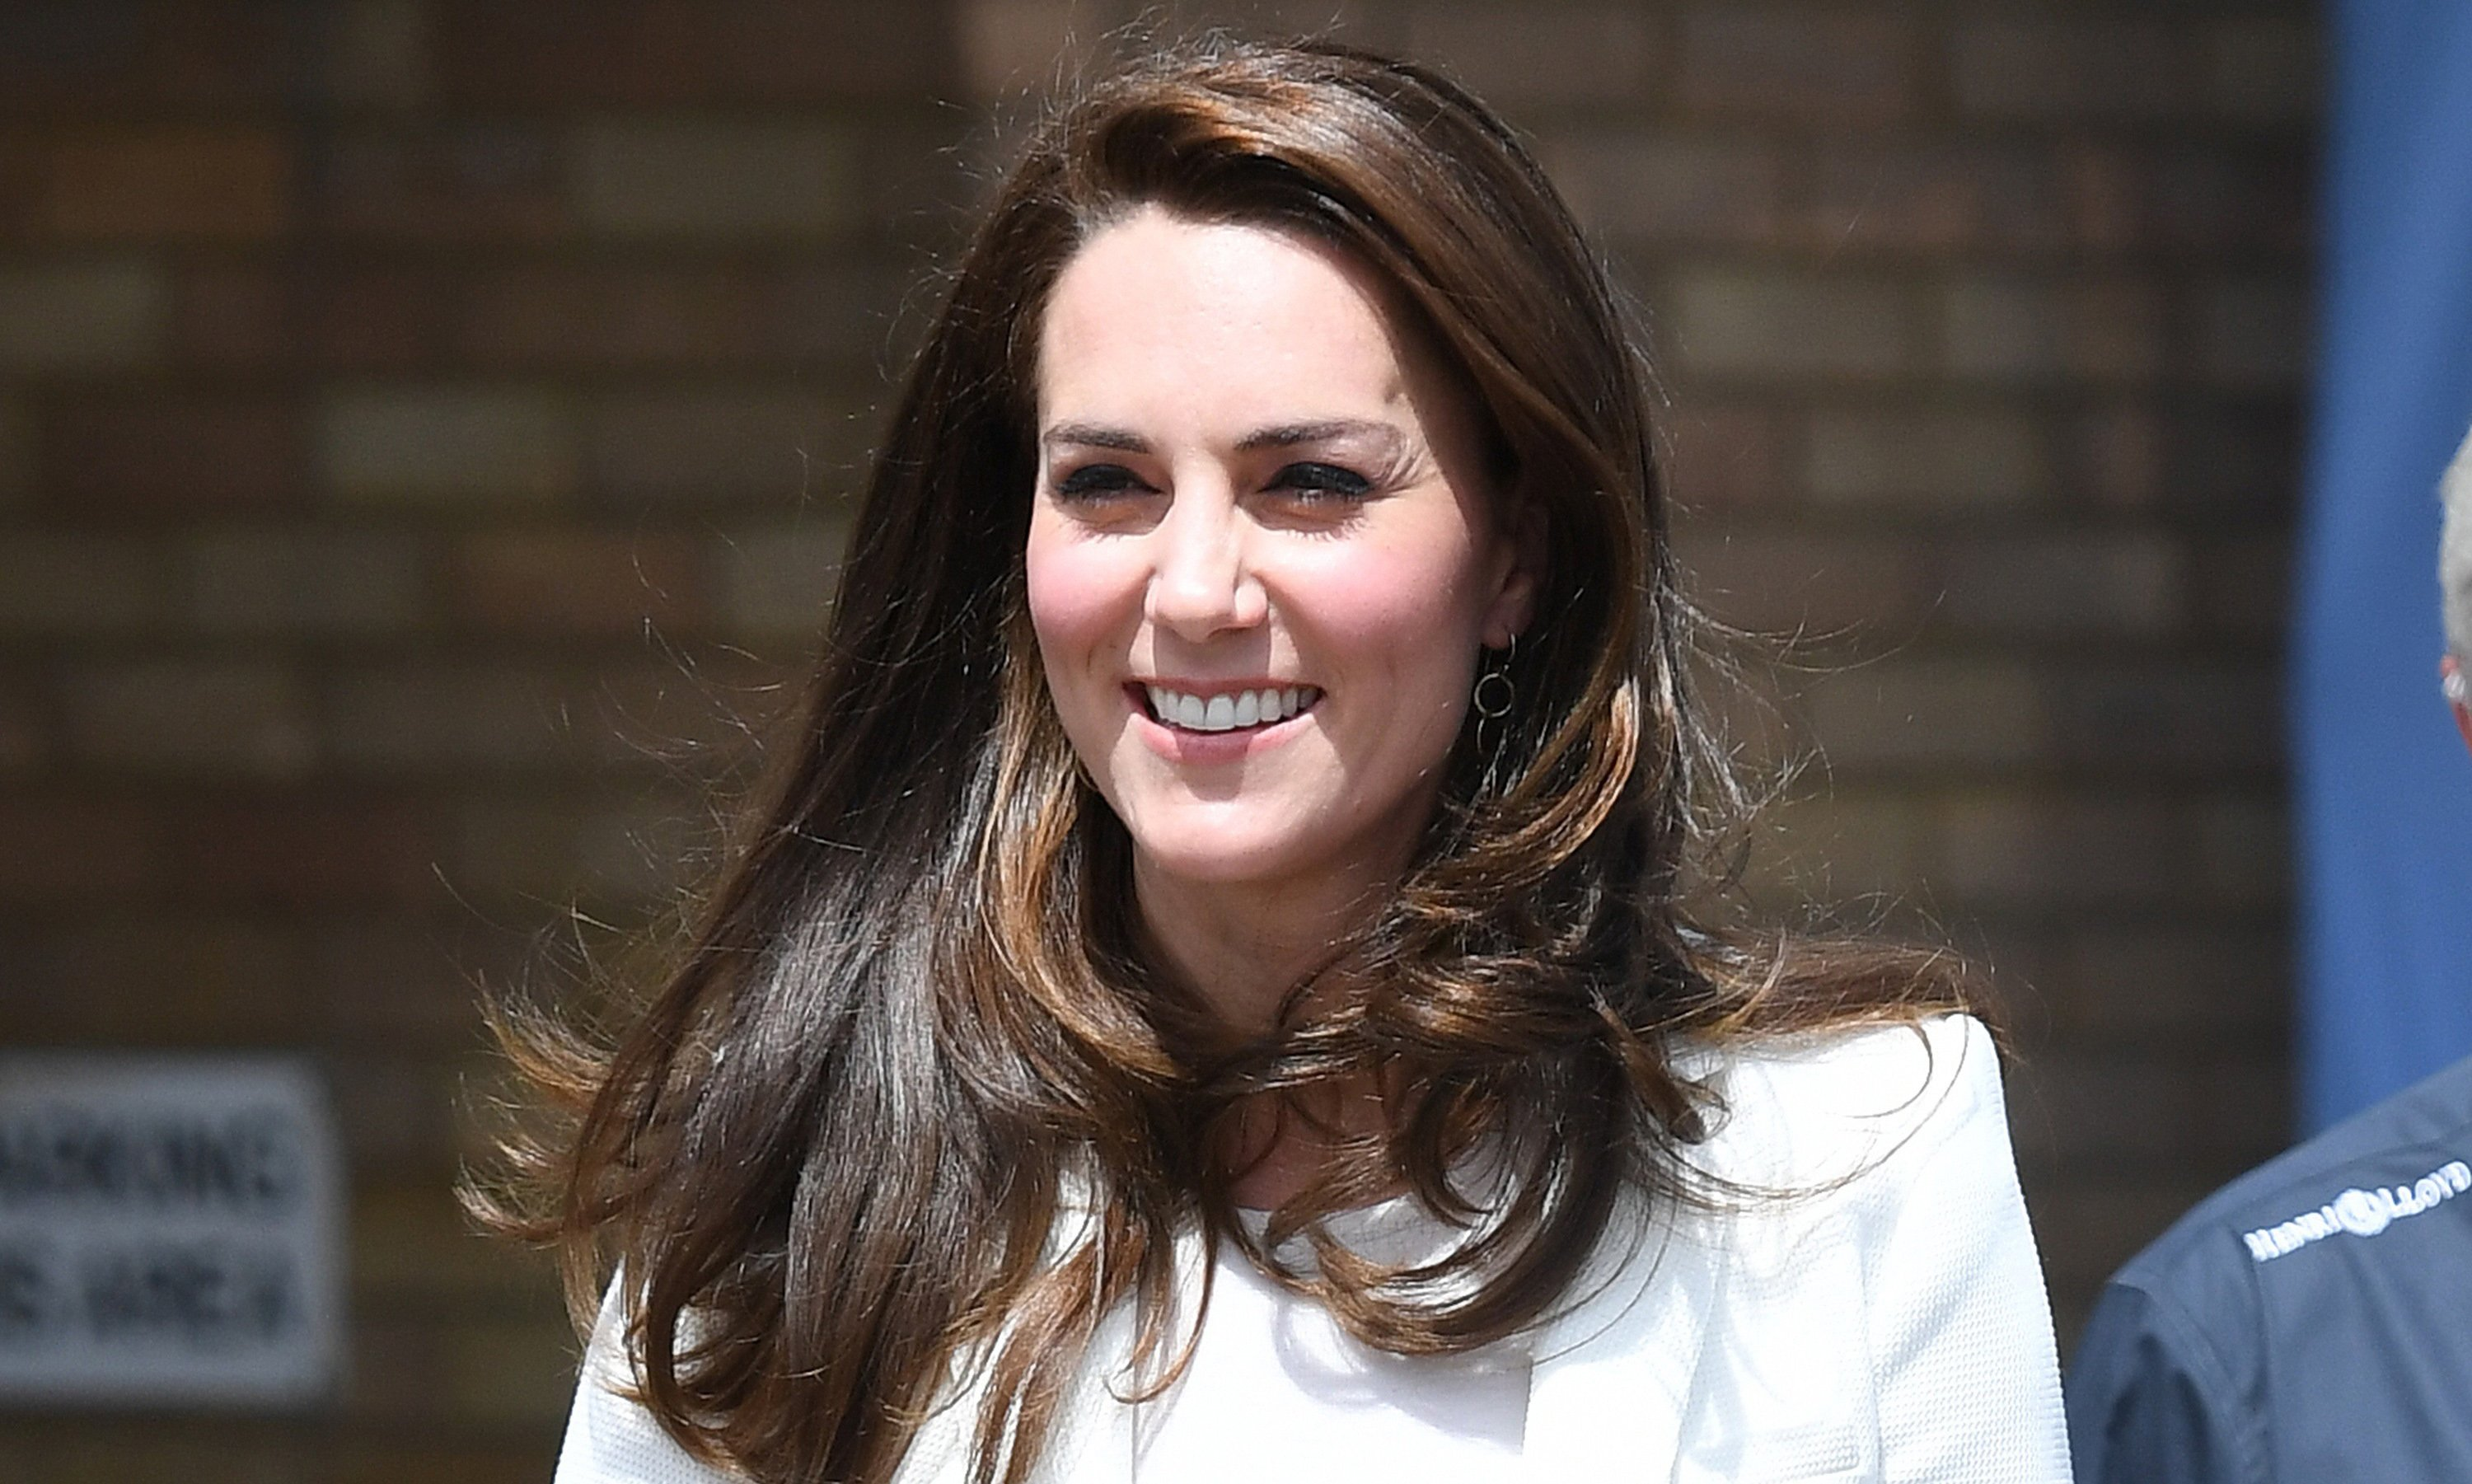 Kate Middleton Rocks Sporty Tracksuit at Wimbledon Tennis Event